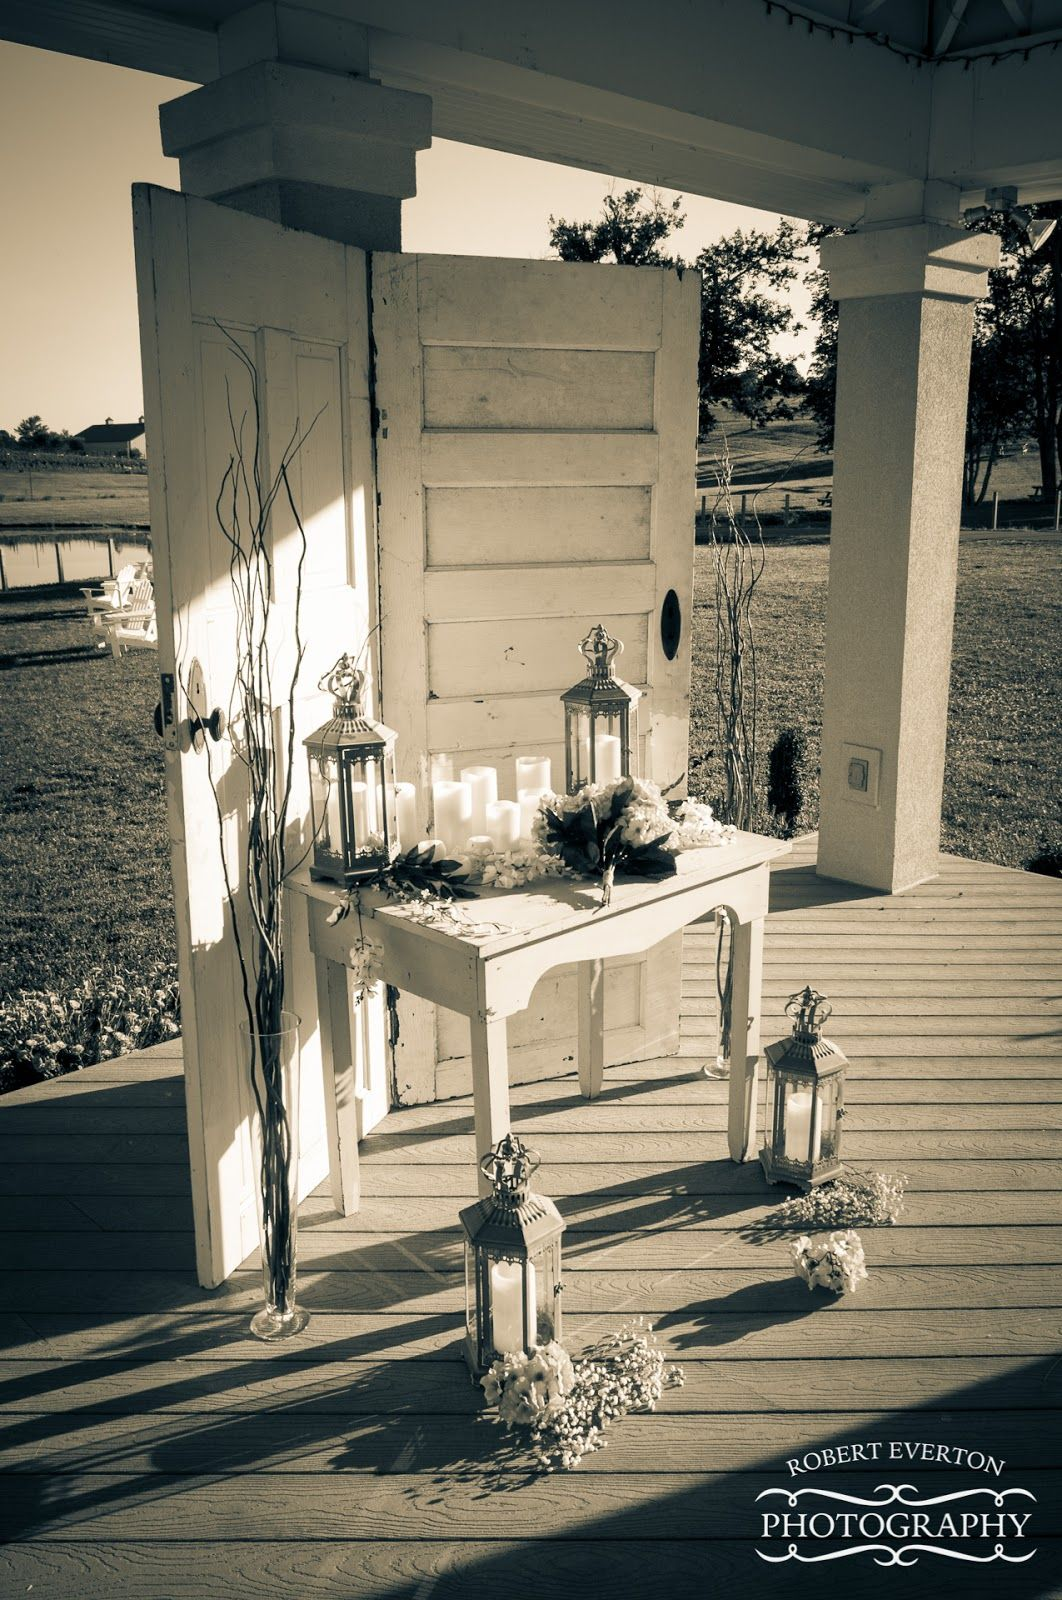 Robert Everton Photography Stylized Wedding Shoot At Narmada Winery Decor Ceremony By Occasion By